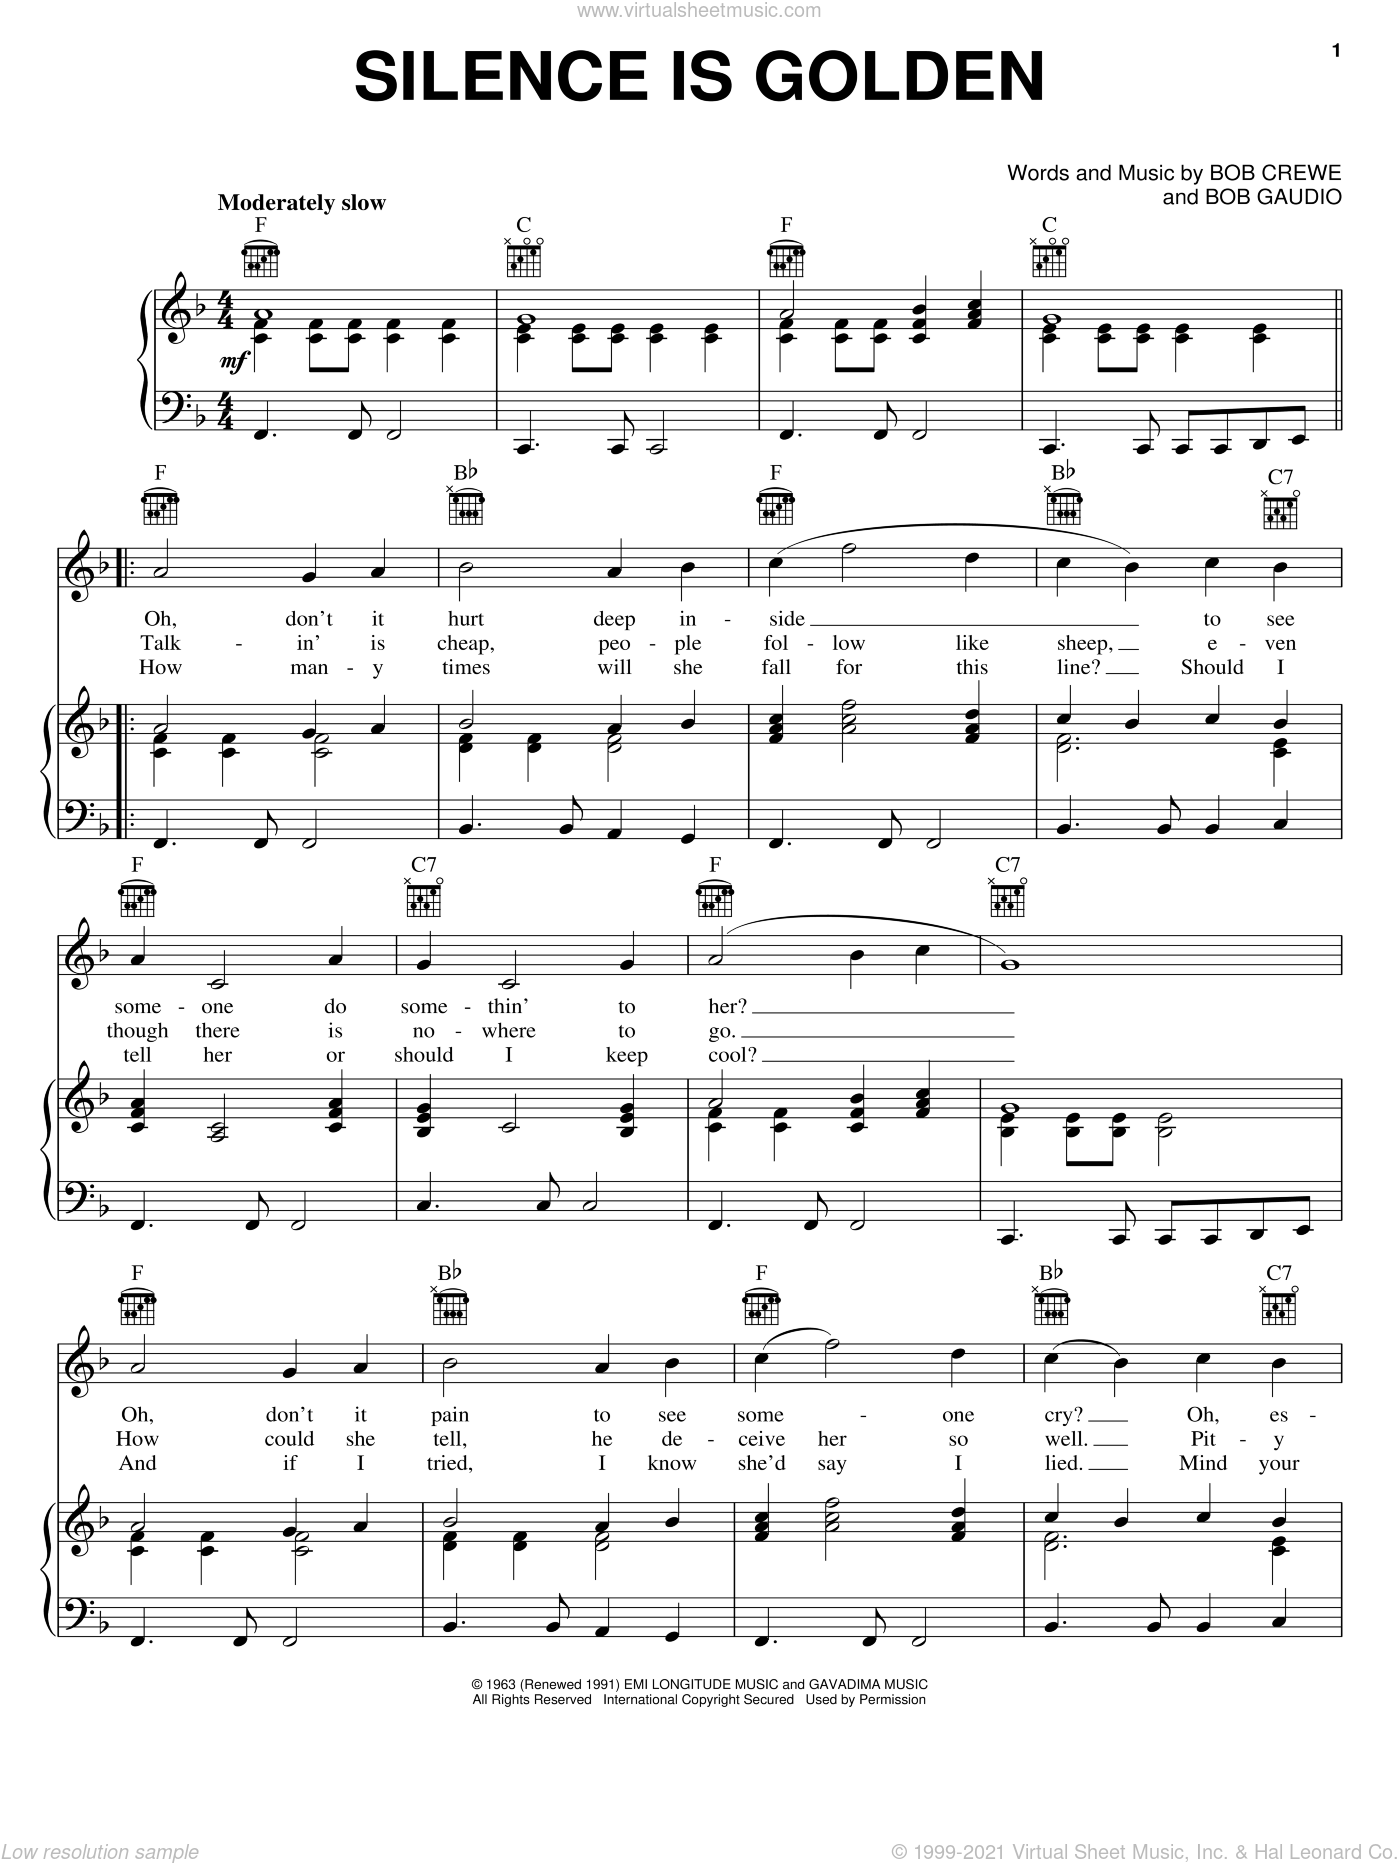 Silence Is Golden sheet music for voice, piano or guitar by Bob Crewe and Bob Gaudio, intermediate skill level